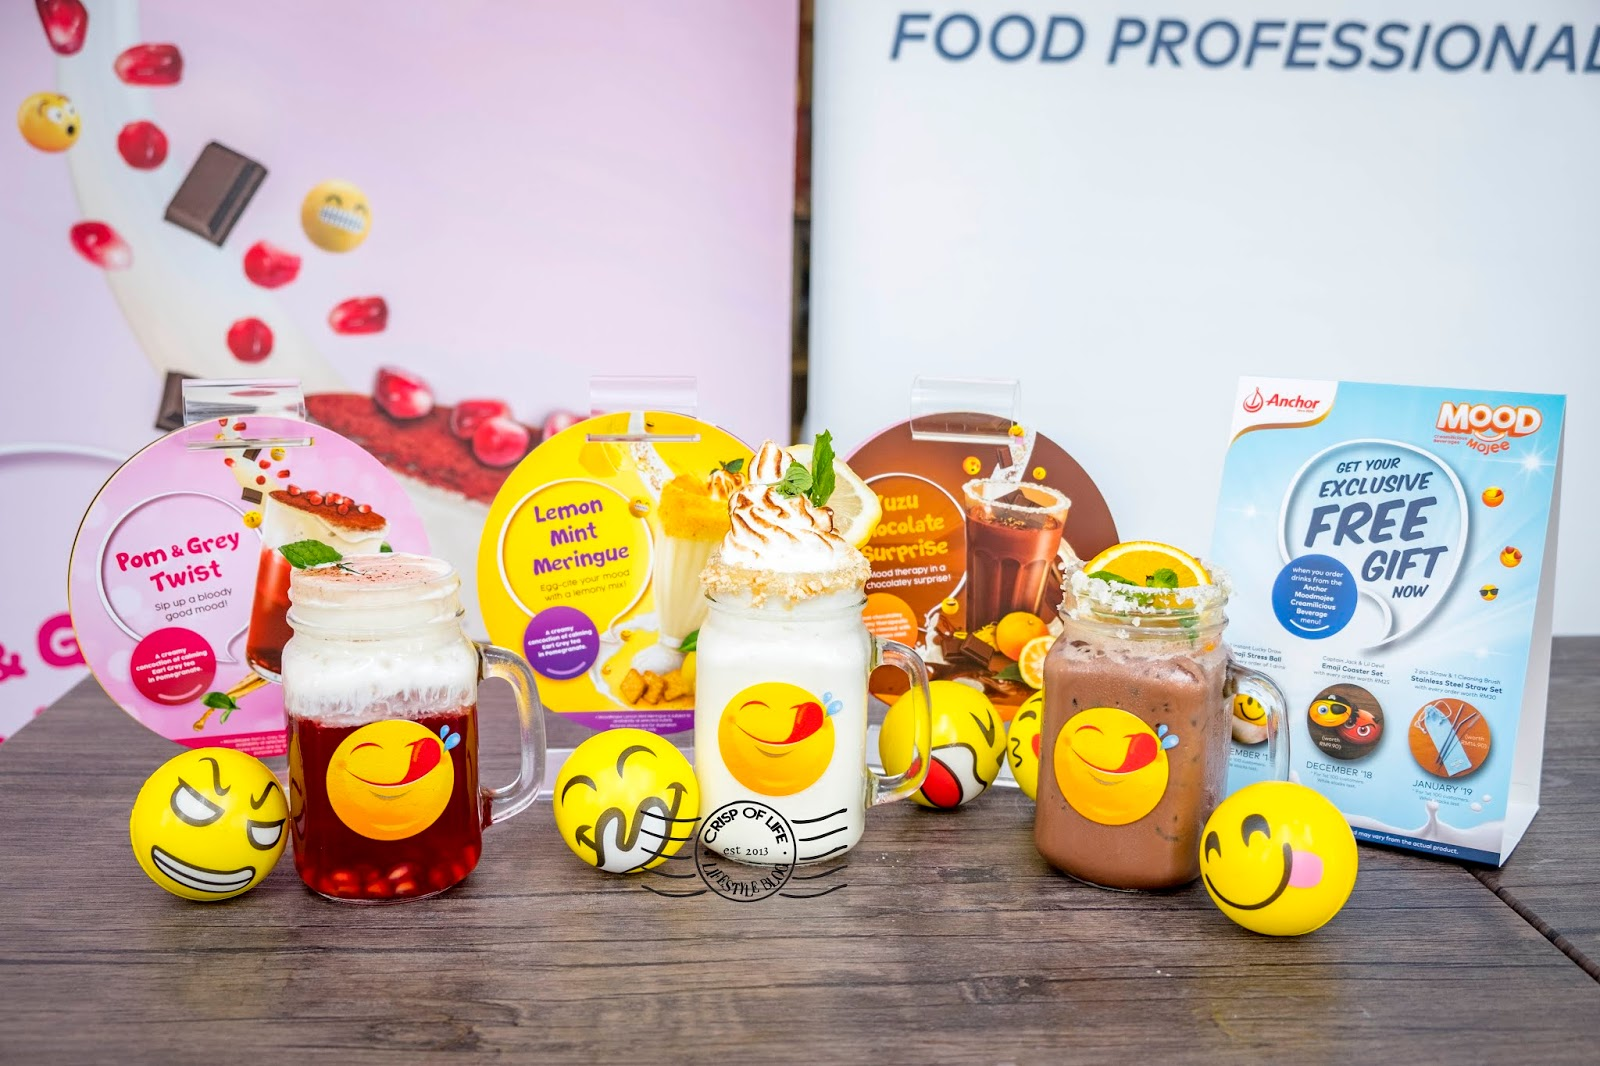 Anchor Food Professionals Moodmojee drinks